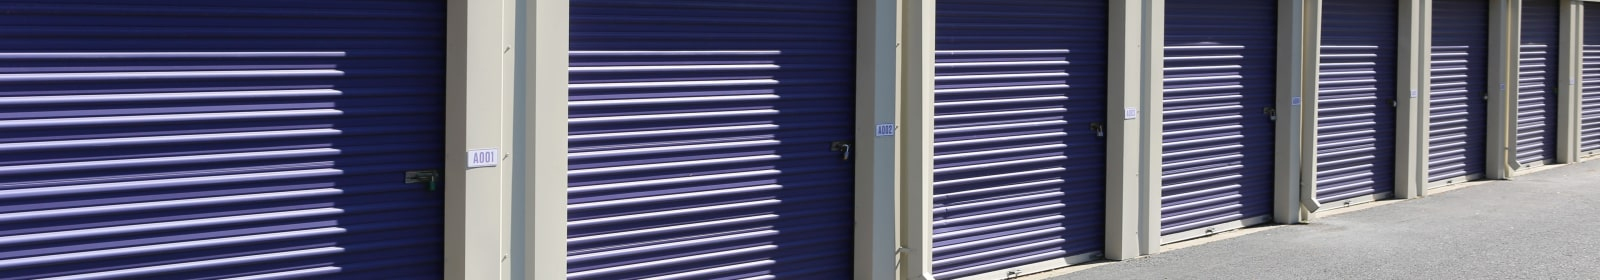 Business storage at StoreSmart Self-Storage in Naples, Florida